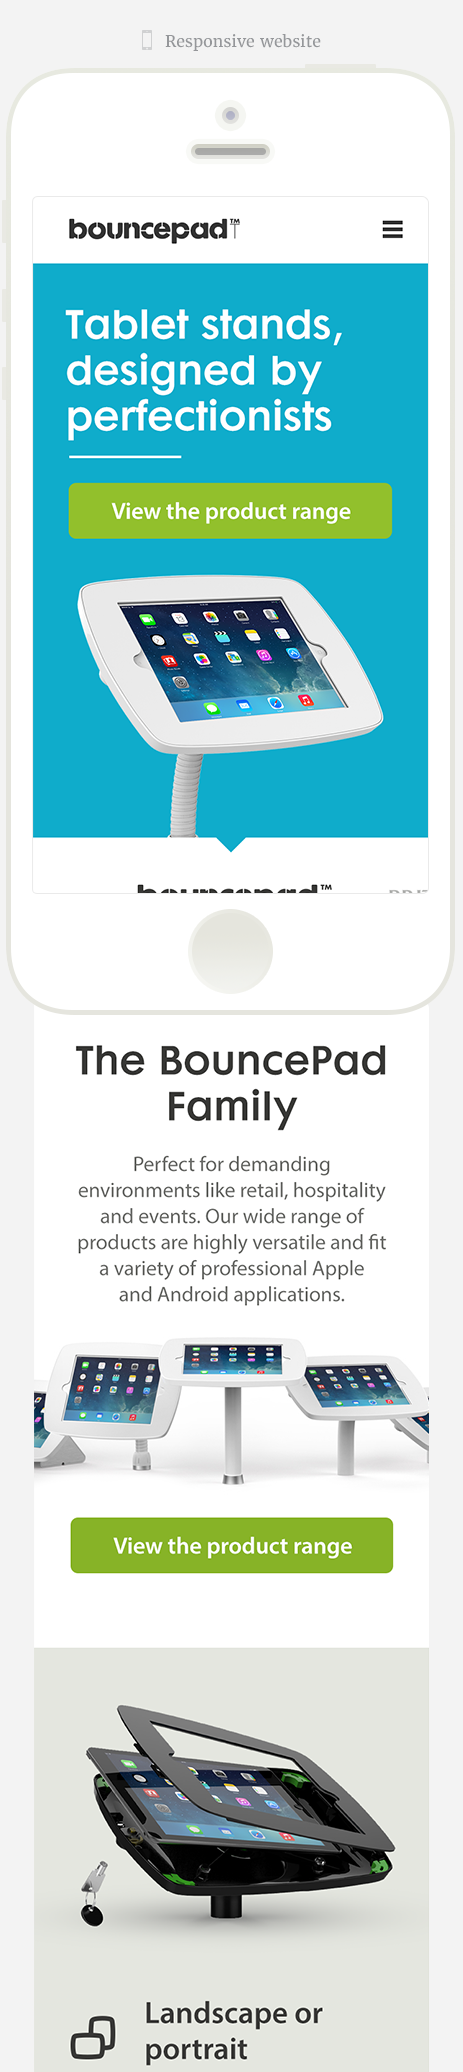 Bouncepad responsive website